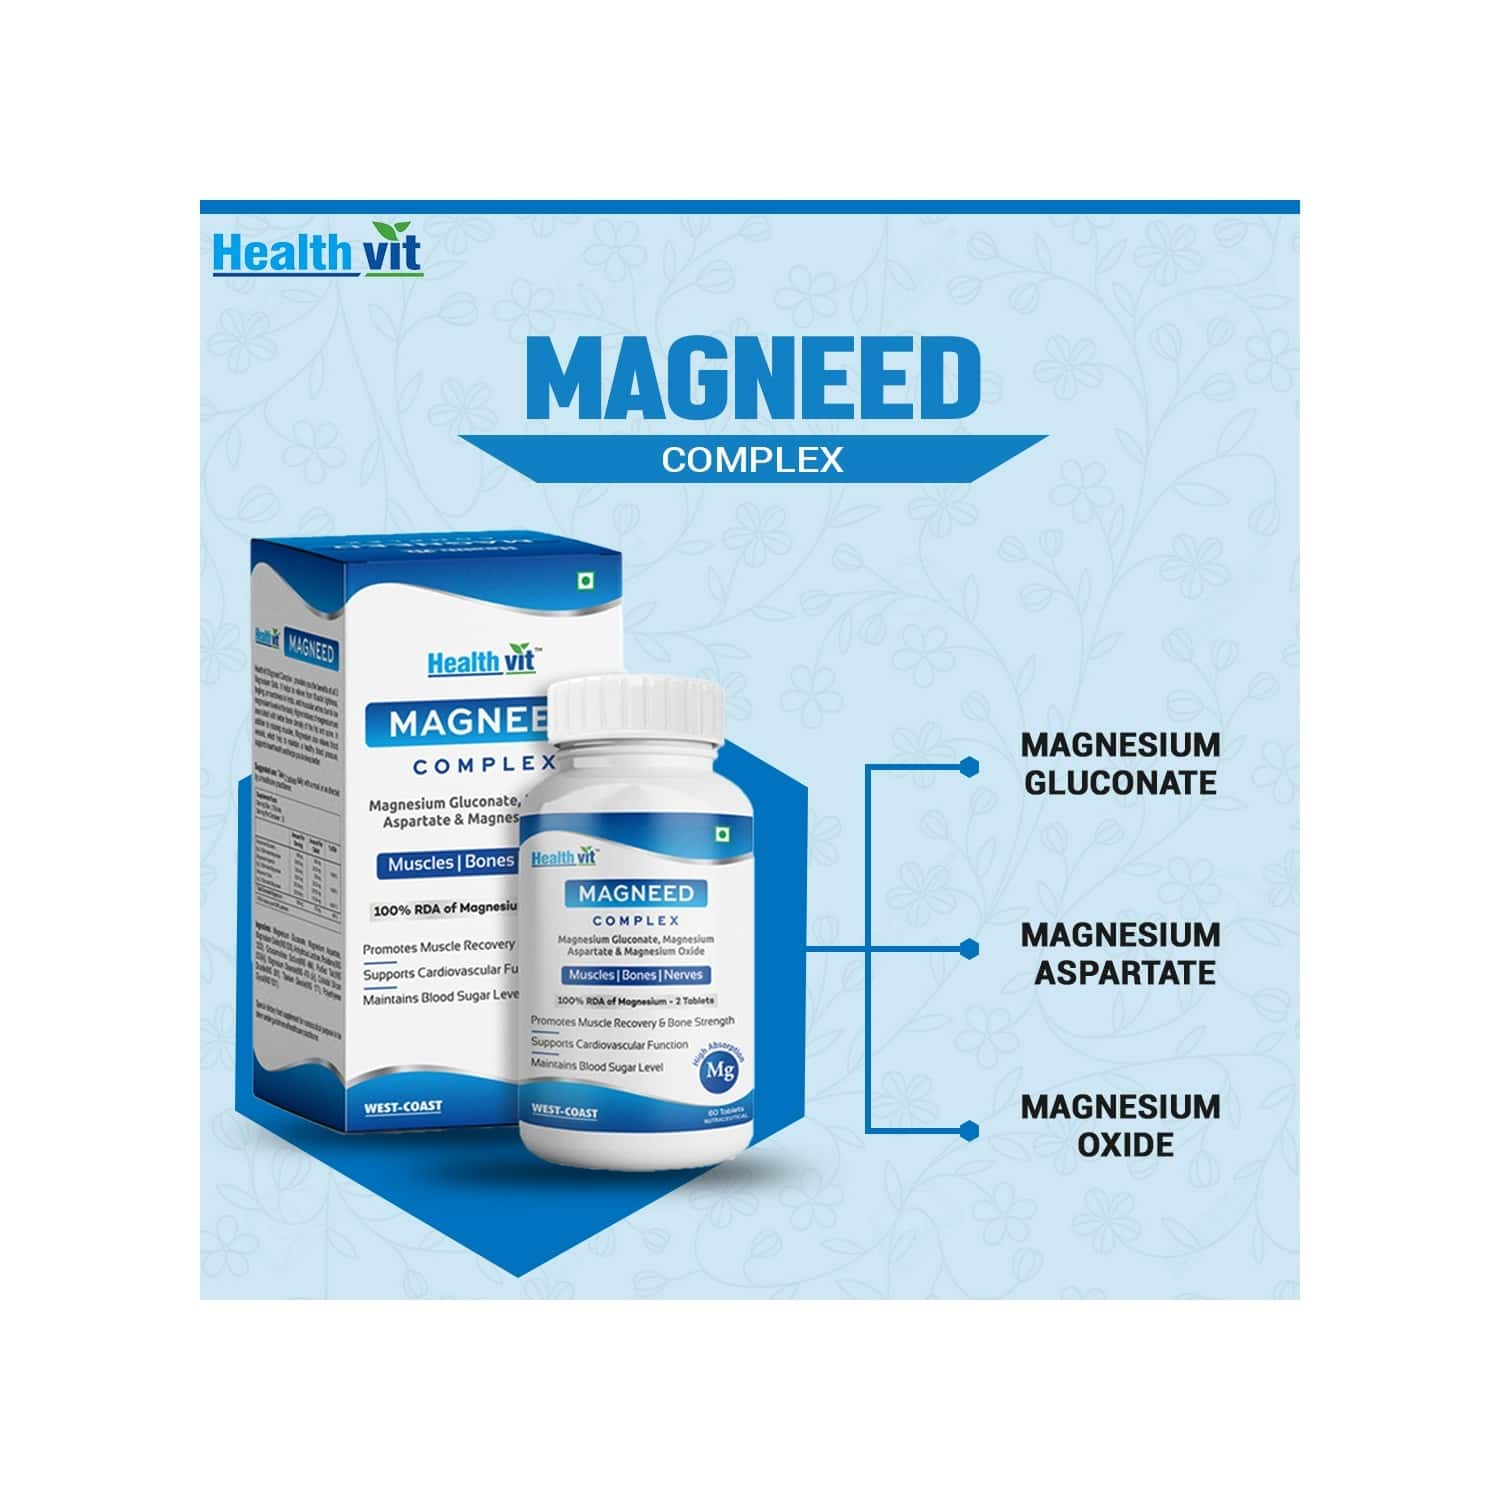 Healthvit Magneed Complex Magnesium Relax Supplement For Relaxing Body Muscles, Smooth Blood Flow, Healthy Digestive System - 60 Tablets